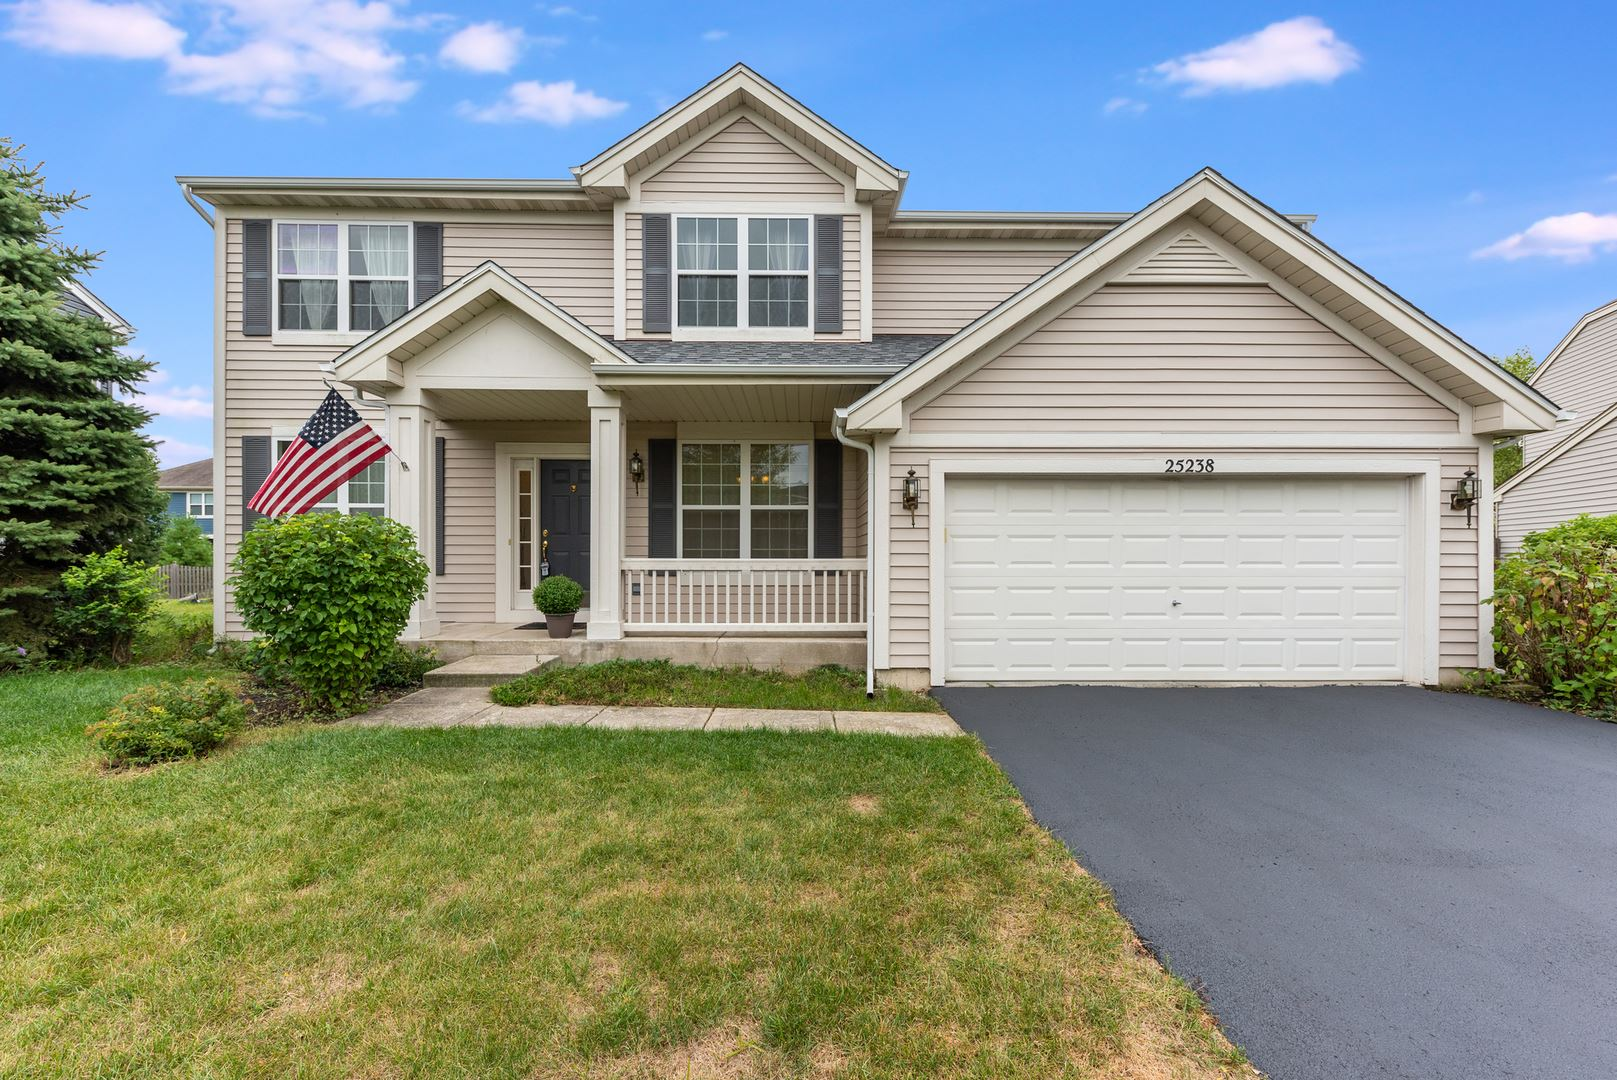 Photo of 25238 Soldier Court, Plainfield, IL 60544 (MLS # 10854074)